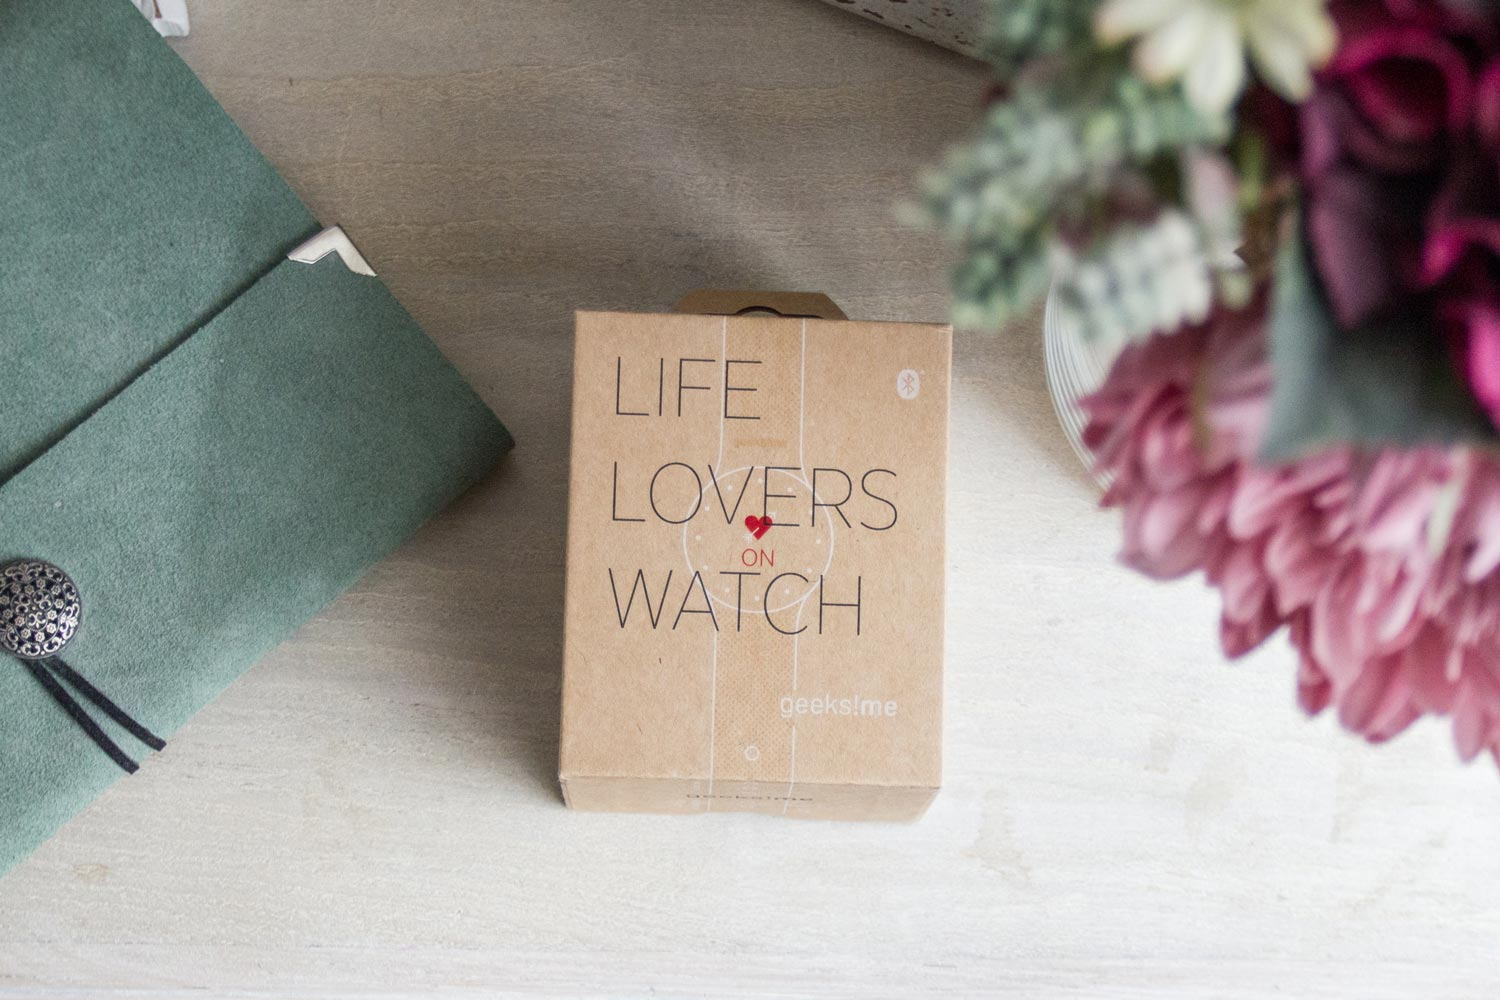 loreto_made_in_style_geeks_me_reloj_life_love_watch-4